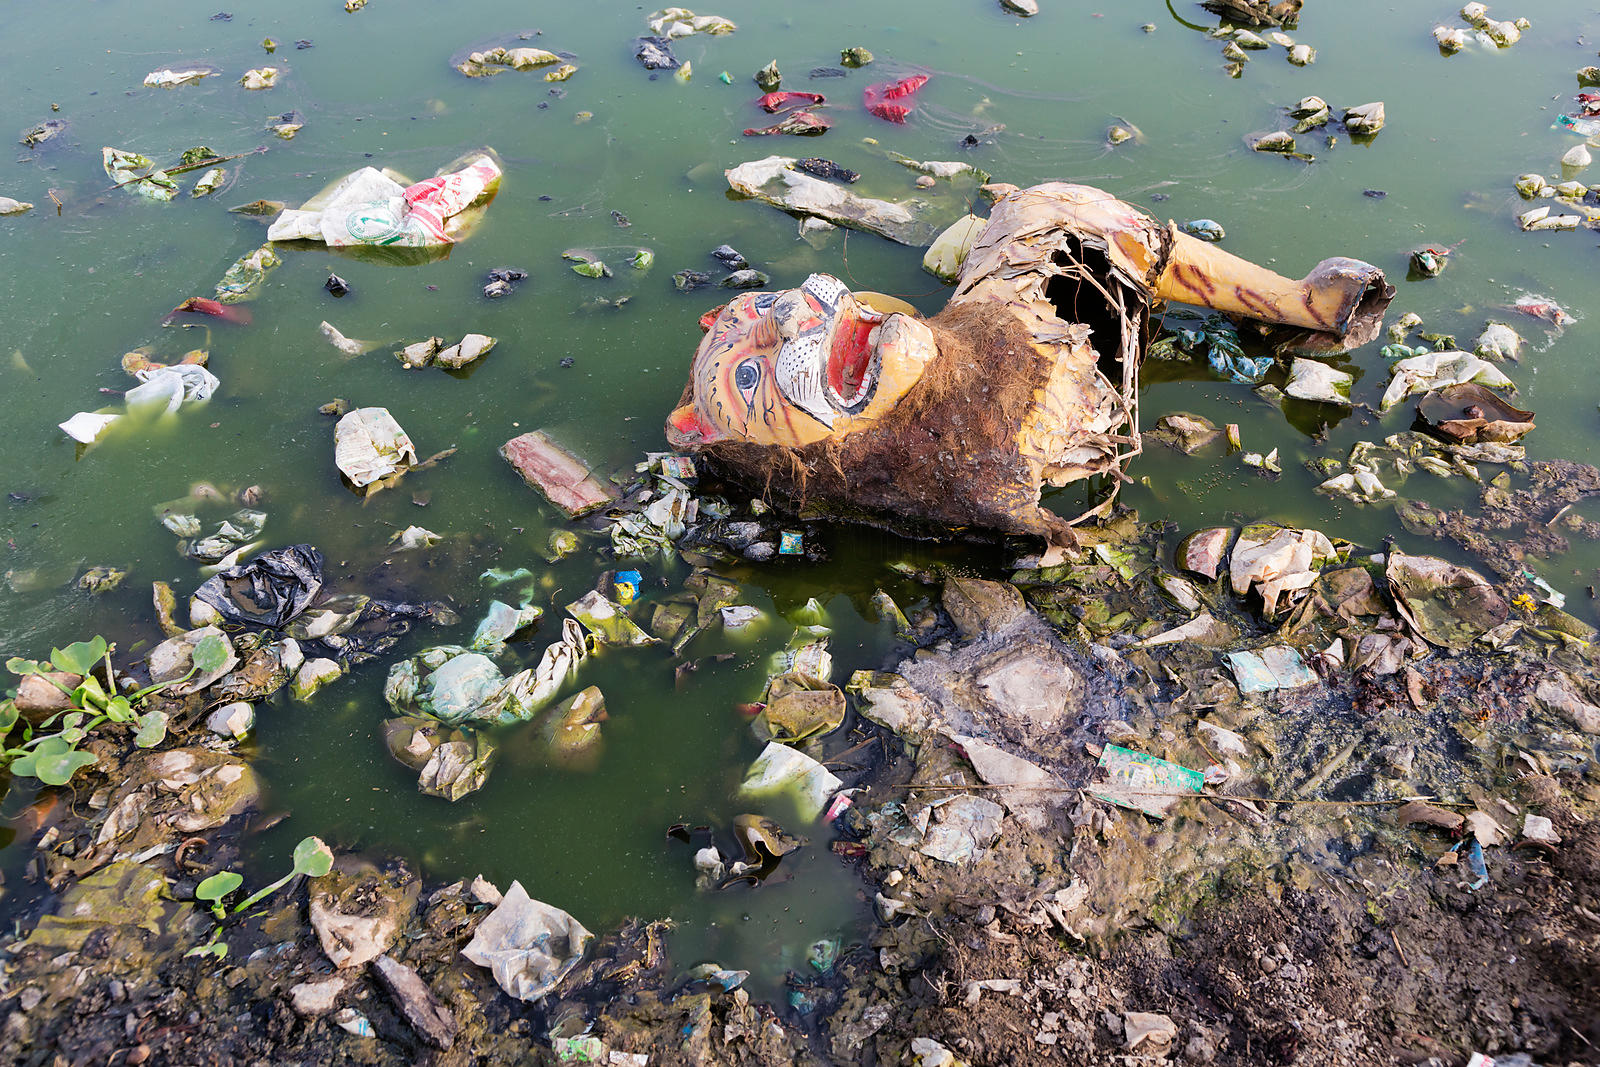 Polluted Water of the Yamuna and Religious Flotsam